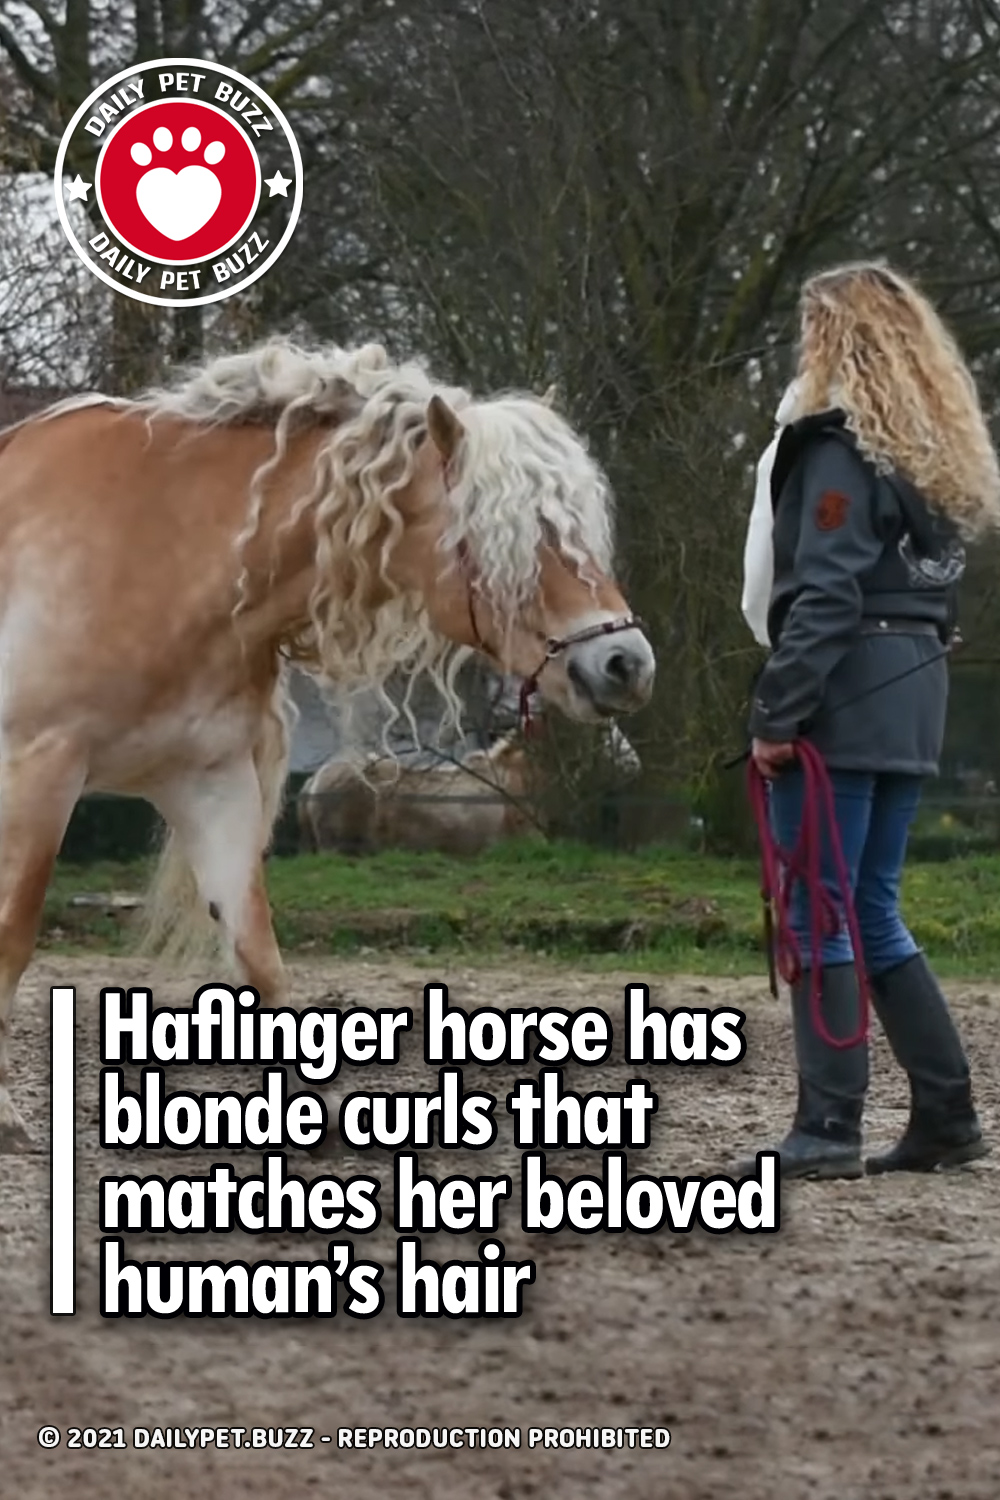 Haflinger horse has blonde curls that matches her beloved human's hair